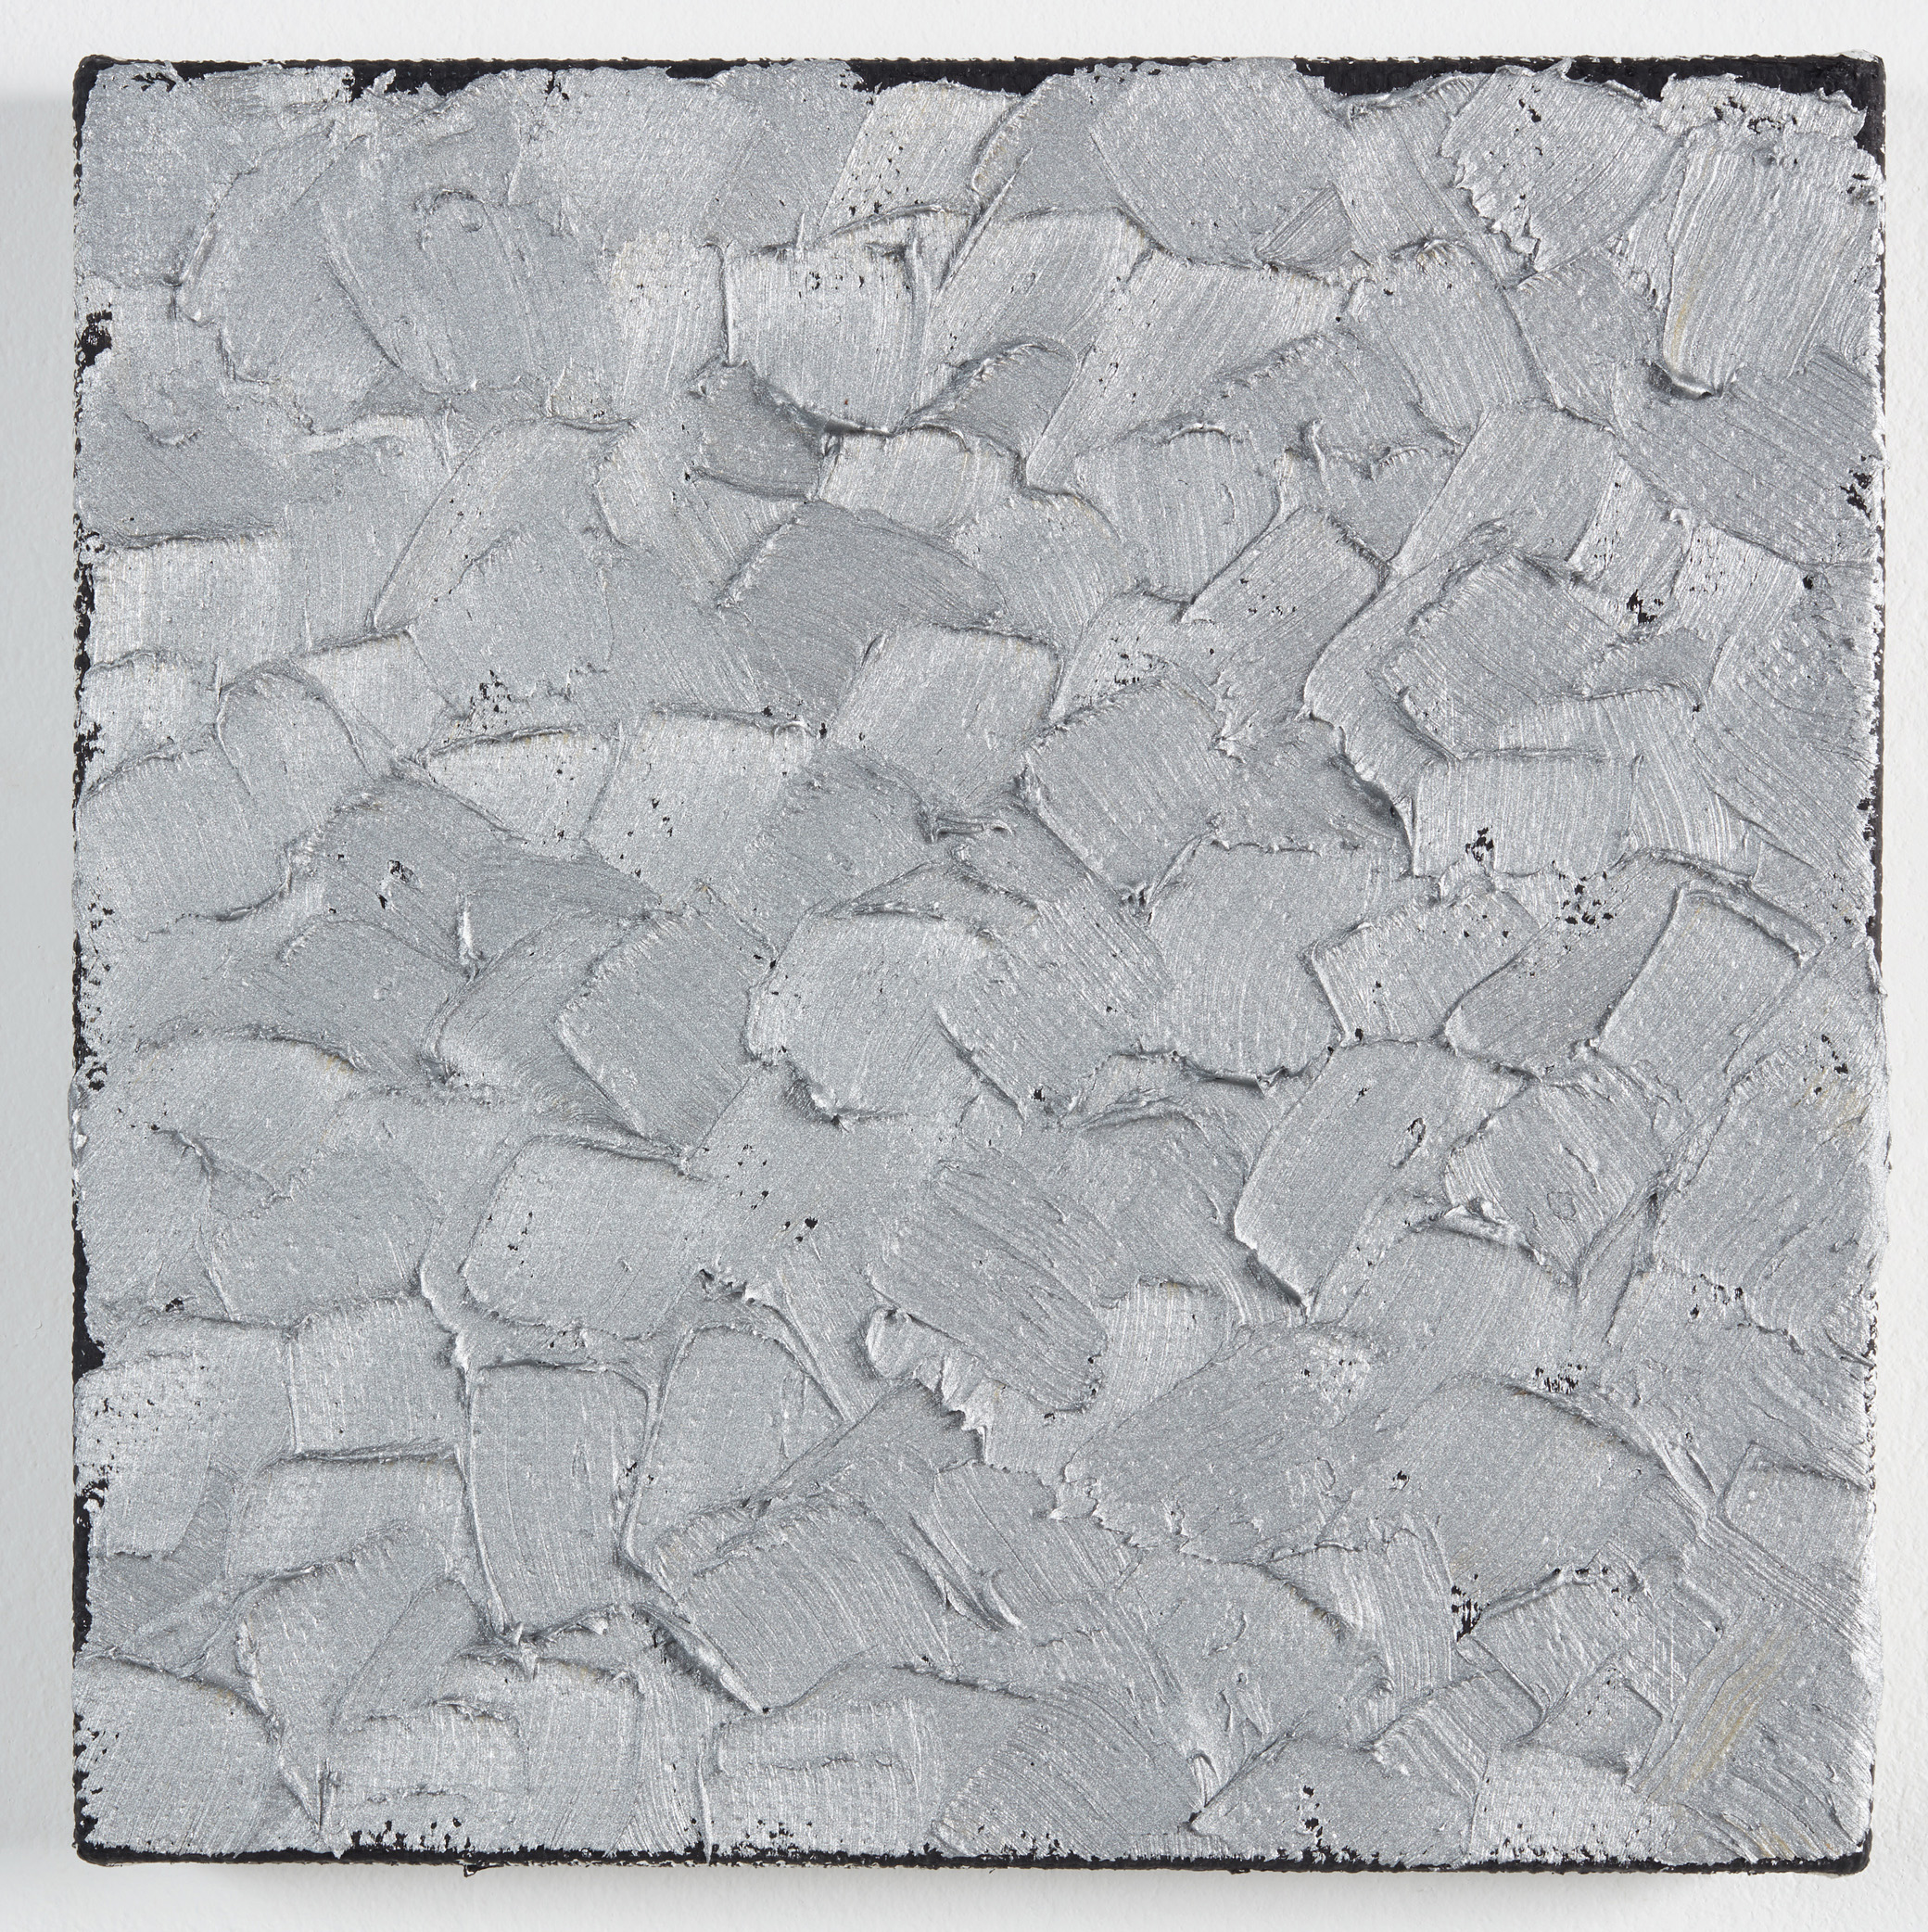 DAVID SERISIER  light silver painting , 2019 oil on linen 30.5 x 30.5 cm